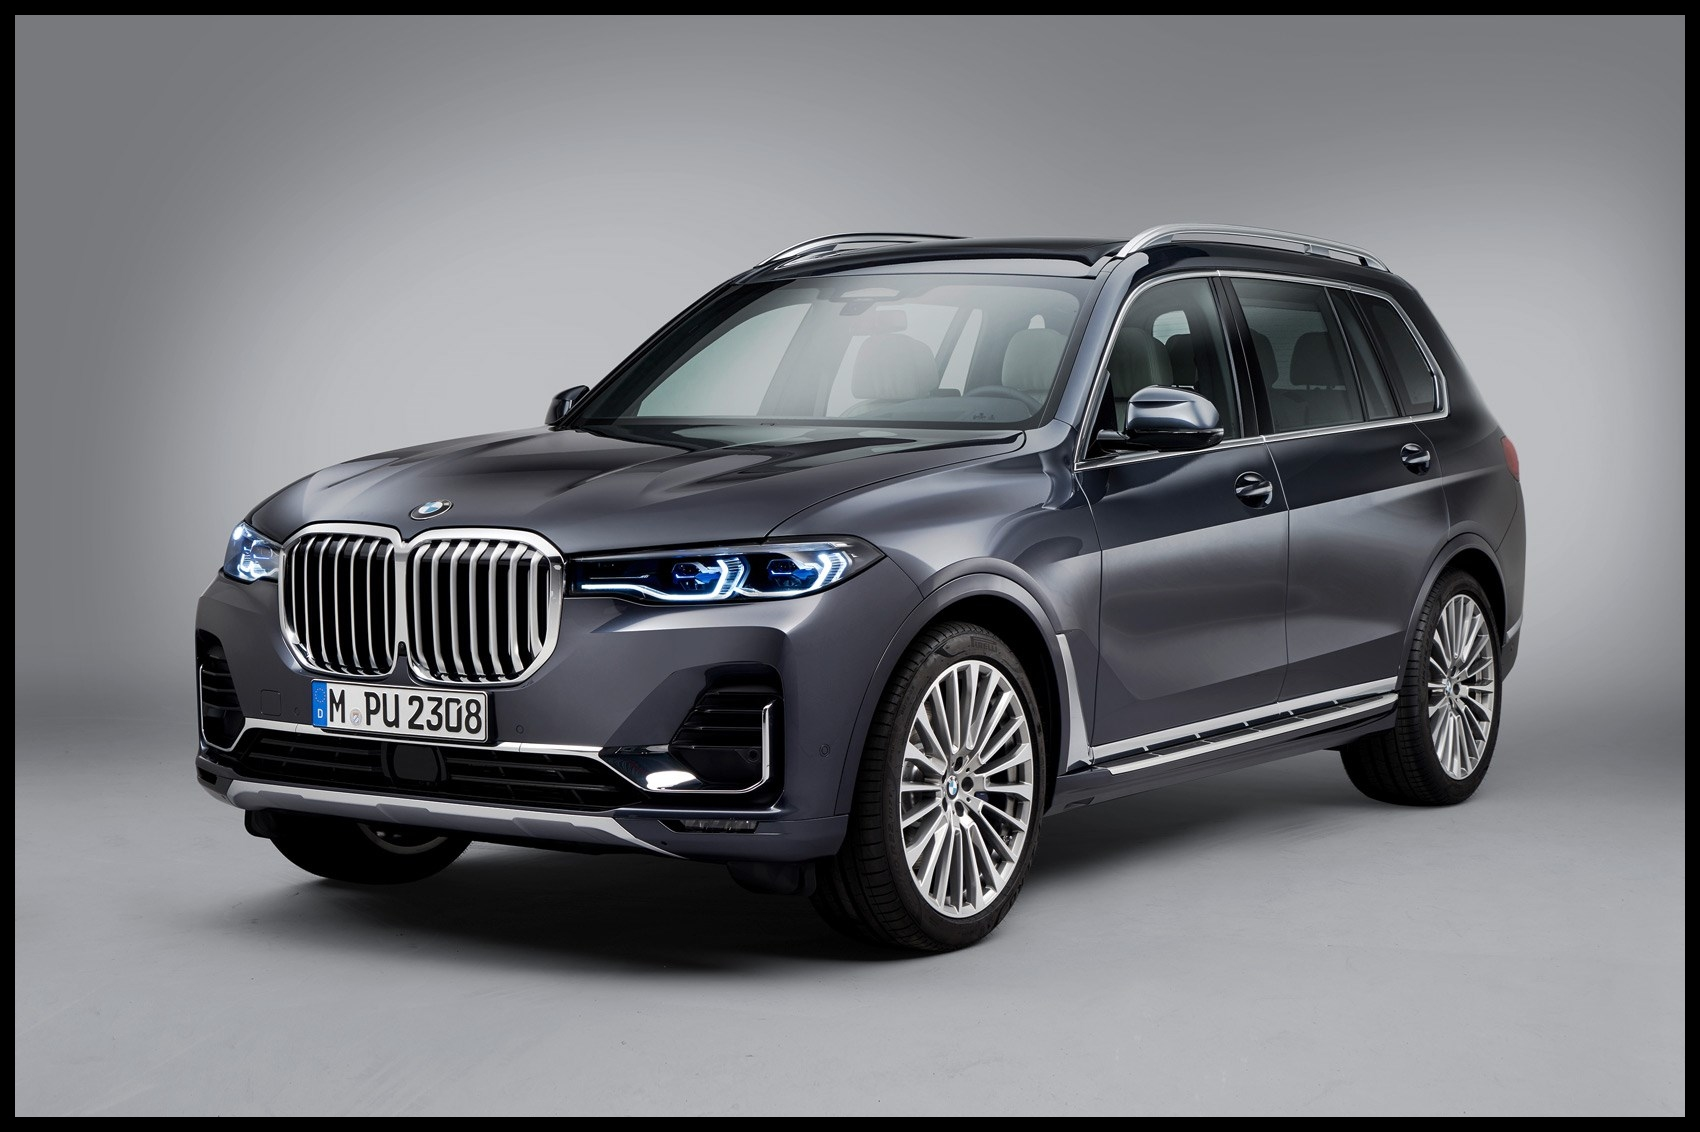 All new BMW X7 Munich s monolith is here